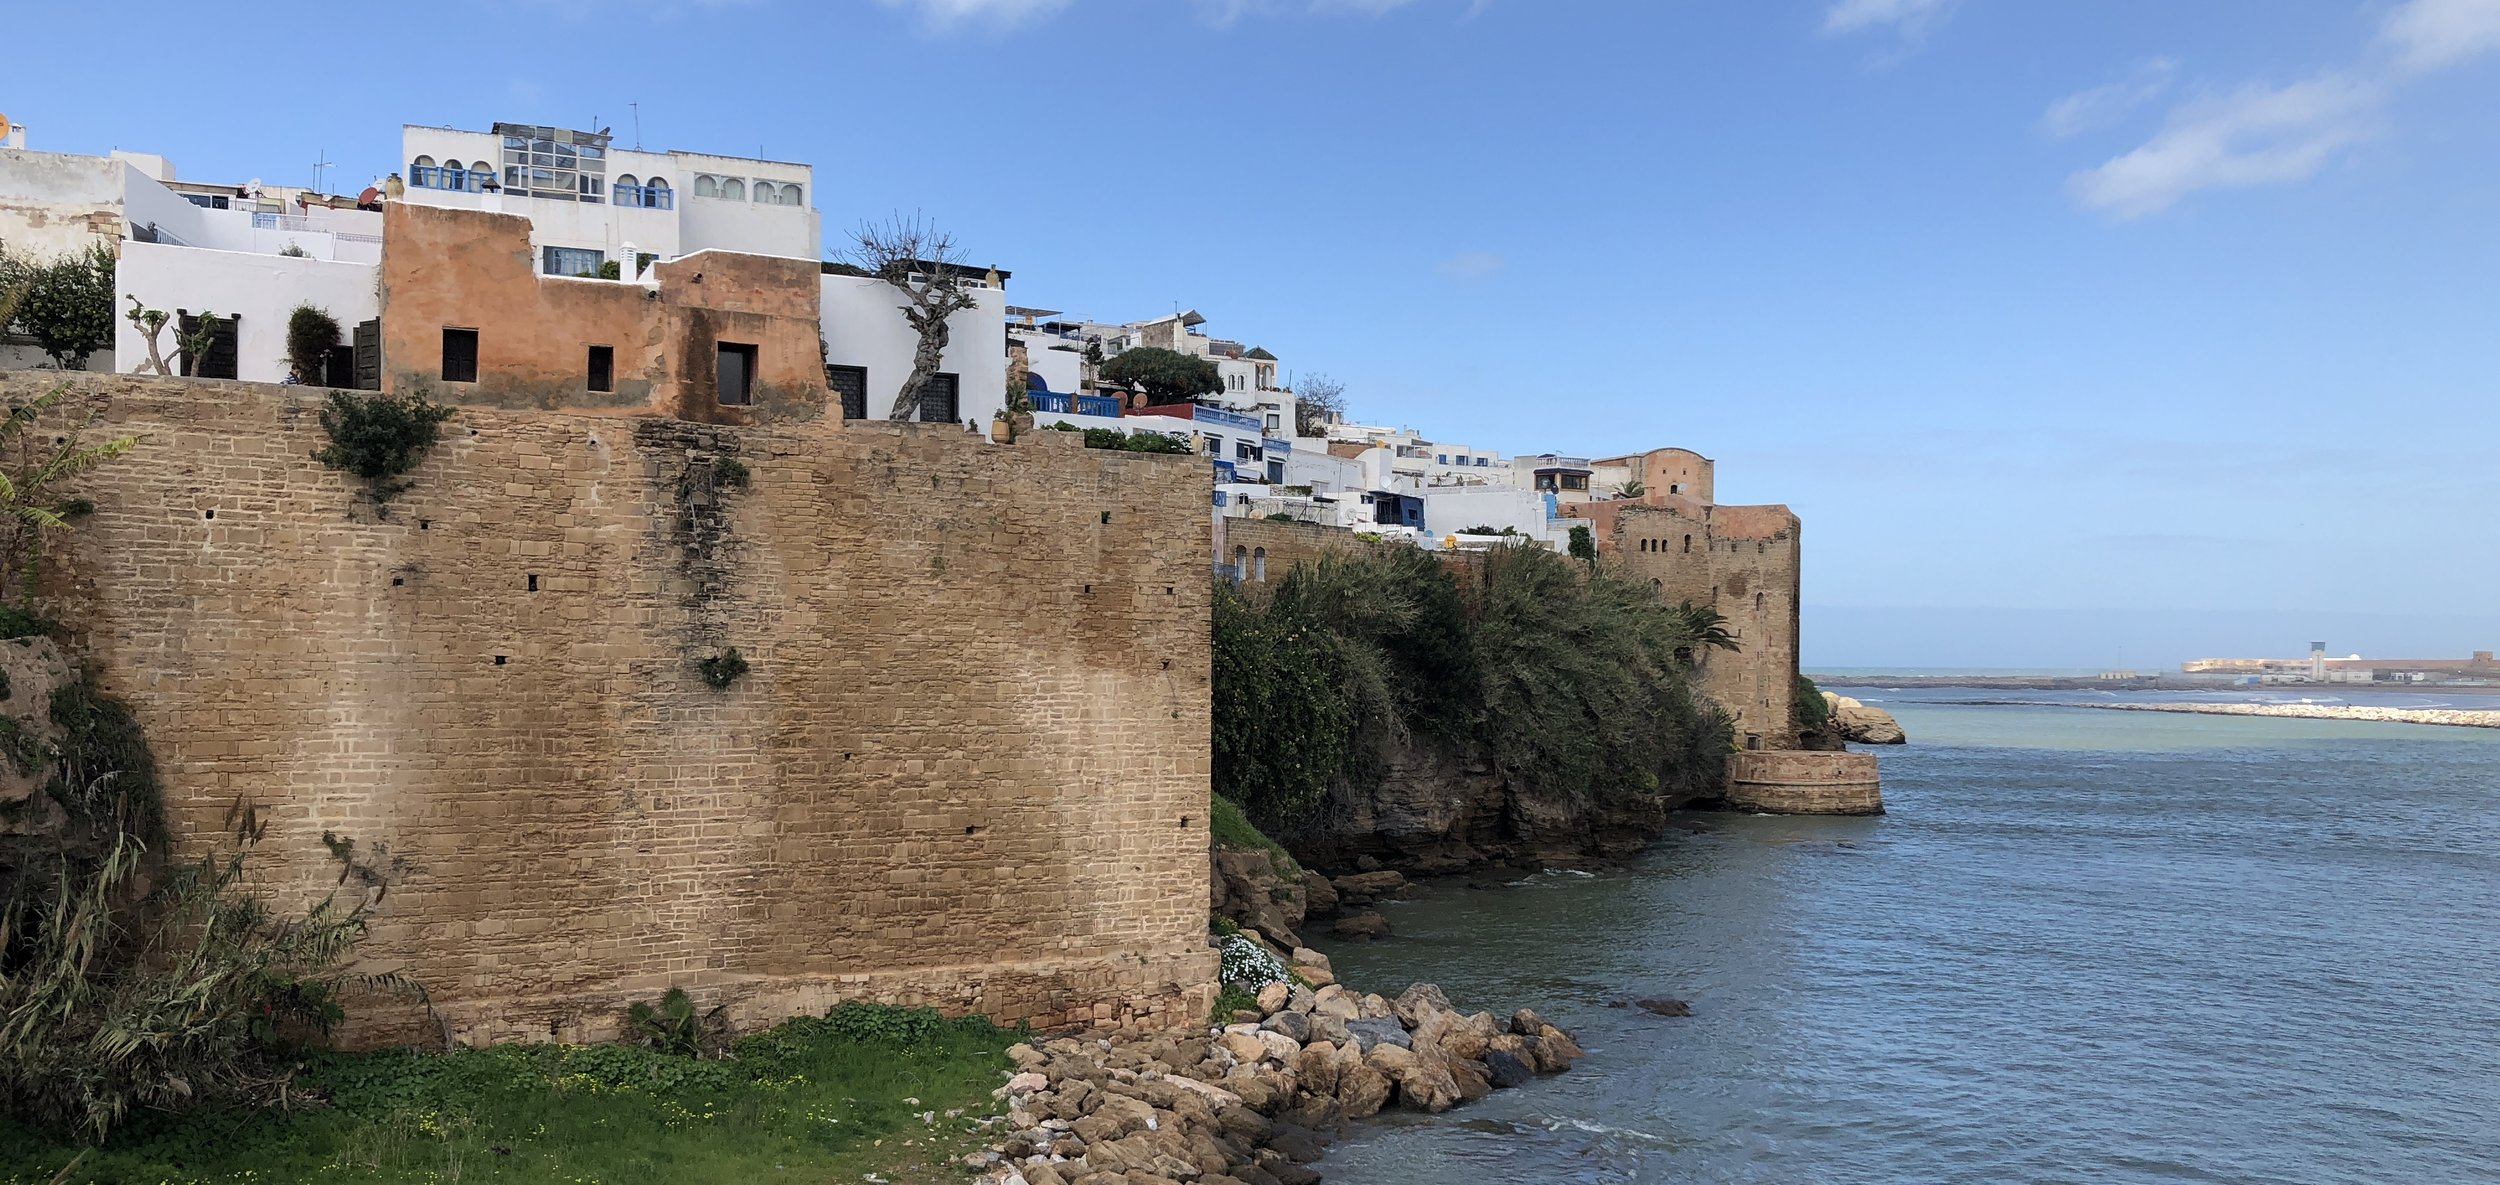 Part of the Rabat medina, encircled by fortress walls and perched at the edge of the Atlantic.